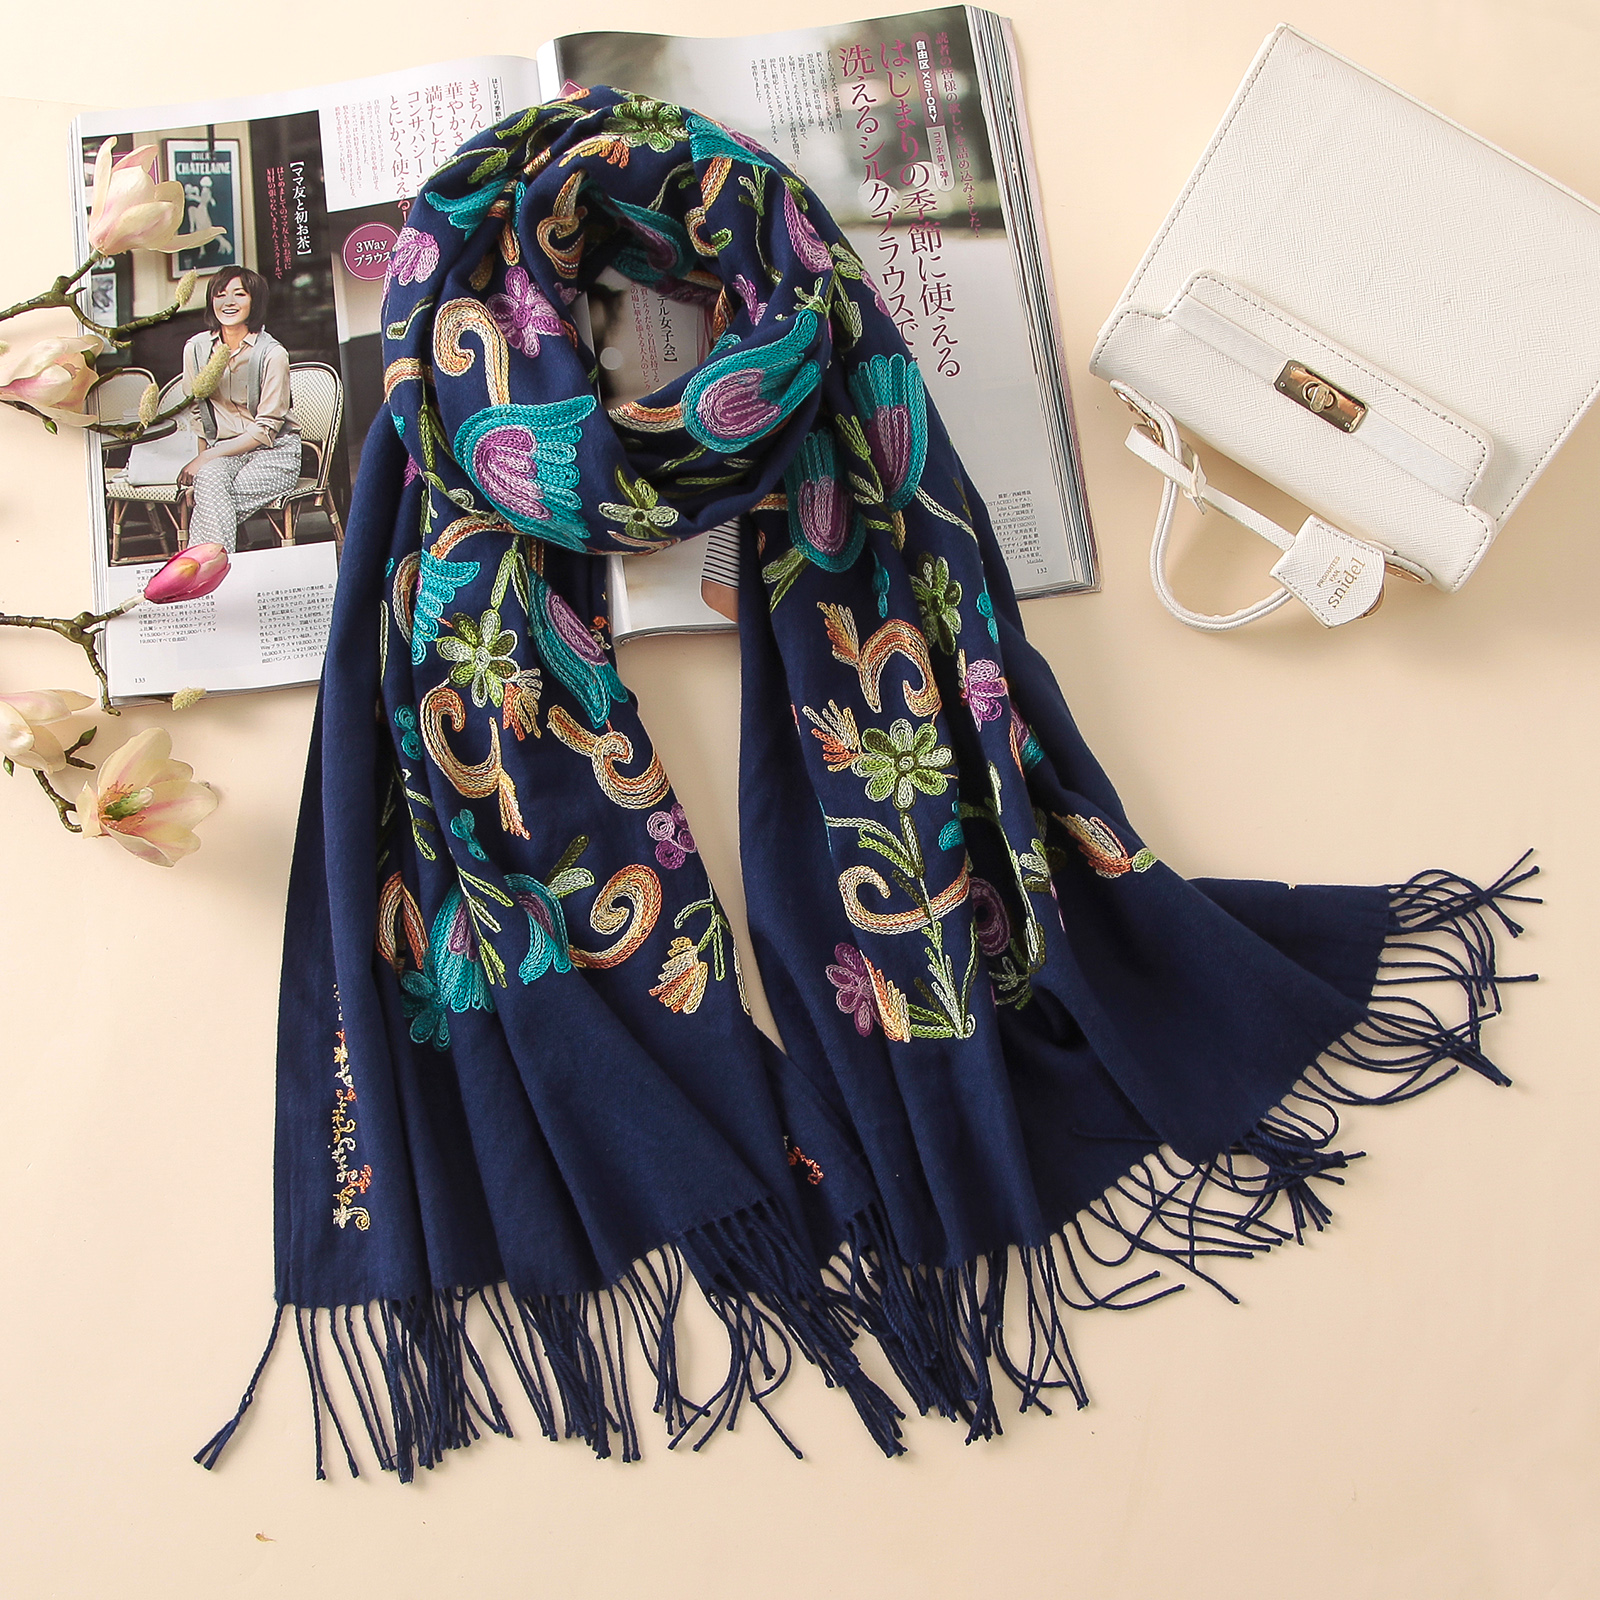 2018 designer quality embroidery cashmere scarves vintage winter women scarf long size shawls and wraps lady soft warmer foulard